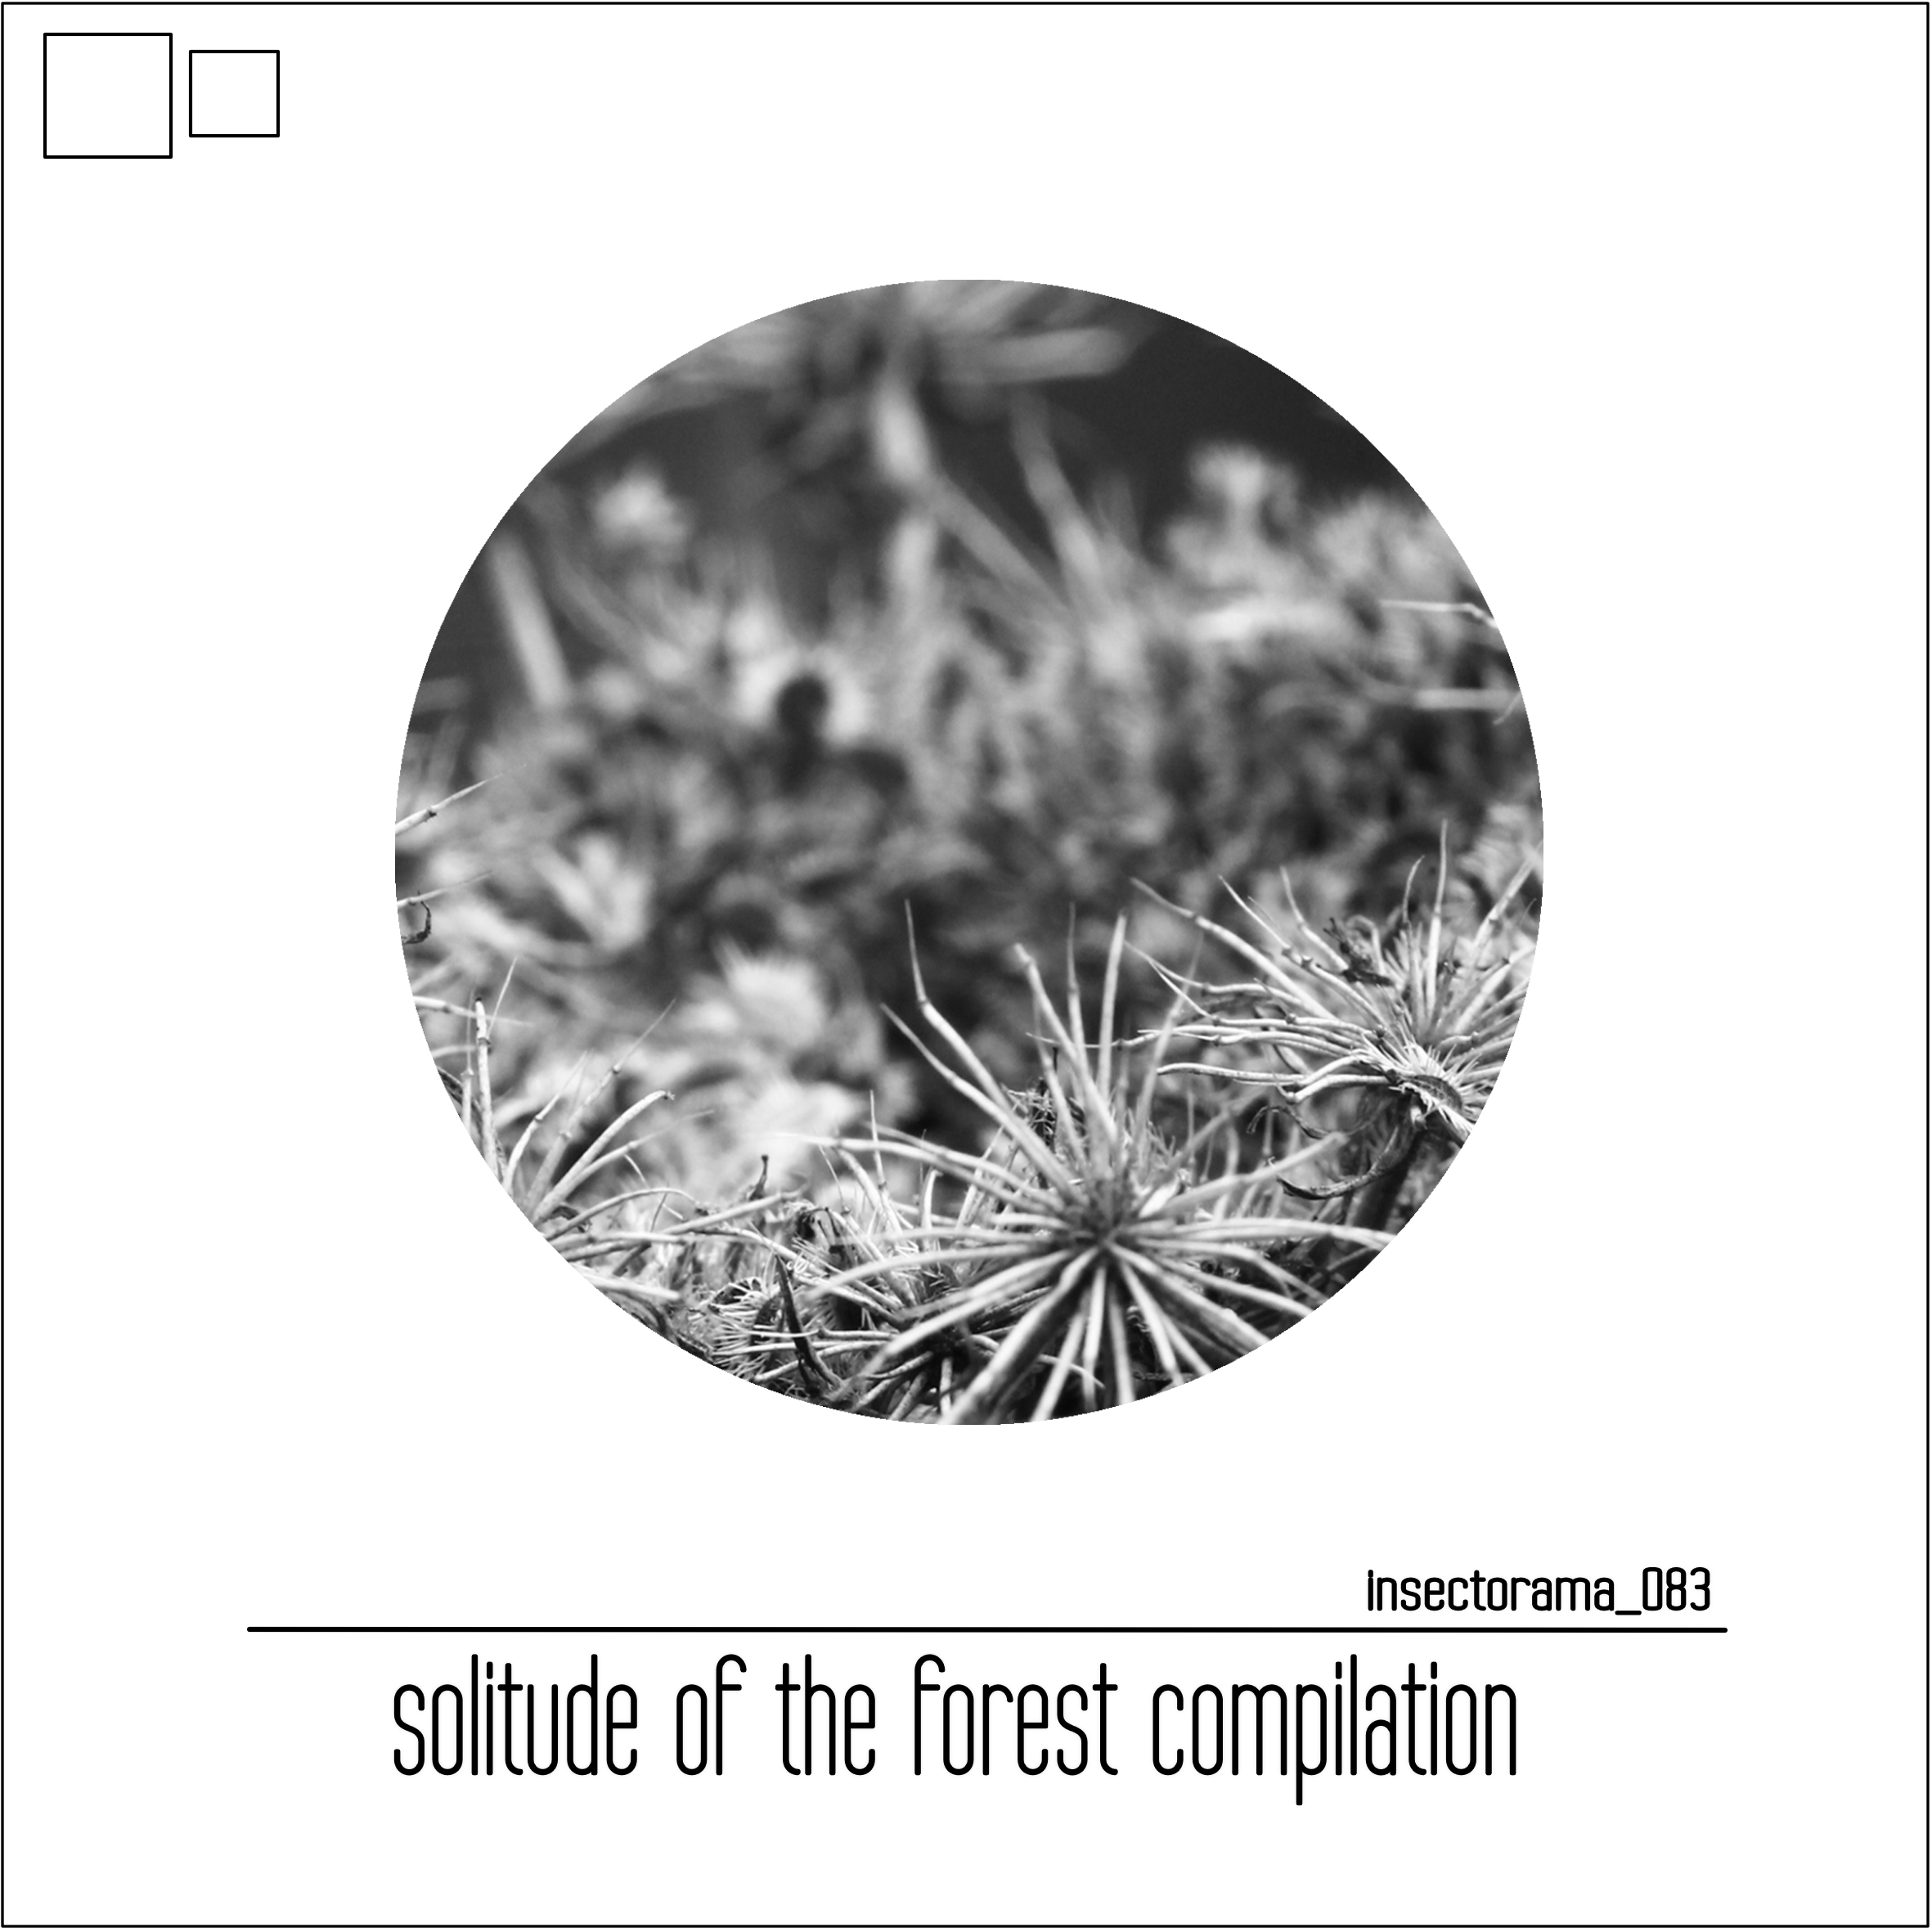 WTX4FAM On Solitute Of The Forest Compilation